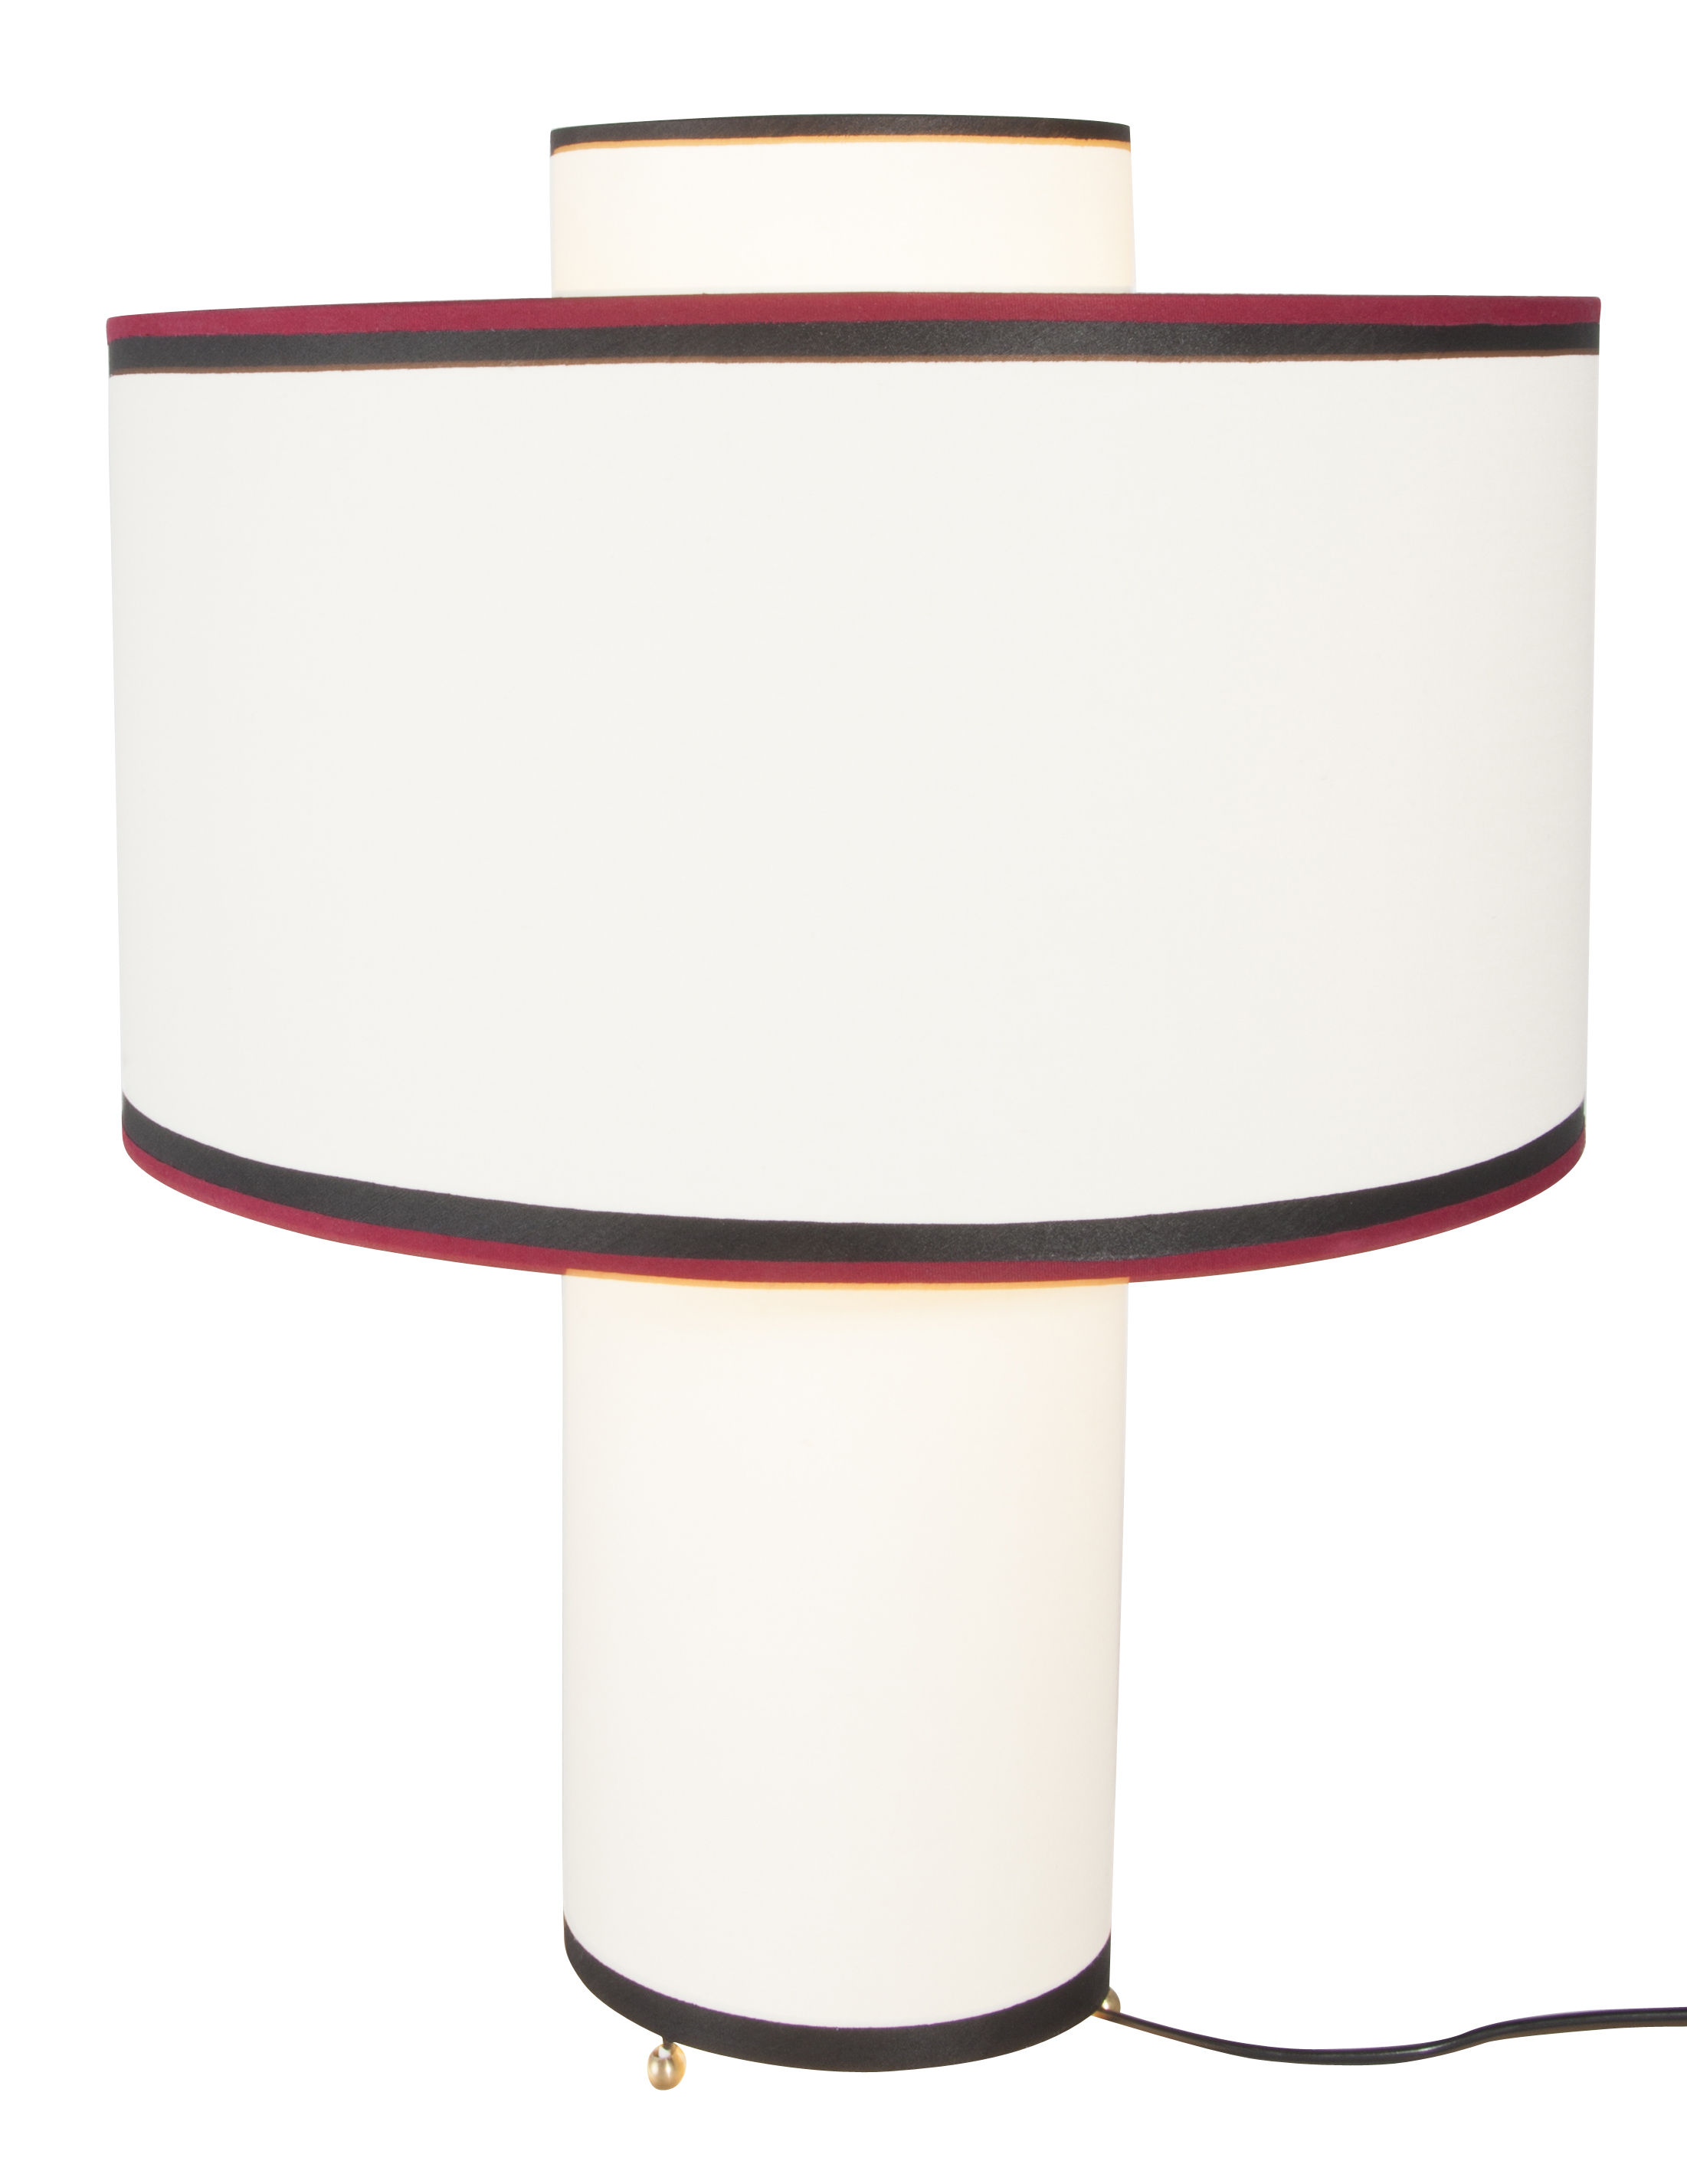 Bianca Table Lamp Cotton ø 36 X H 47 Cm Beige Red And Black